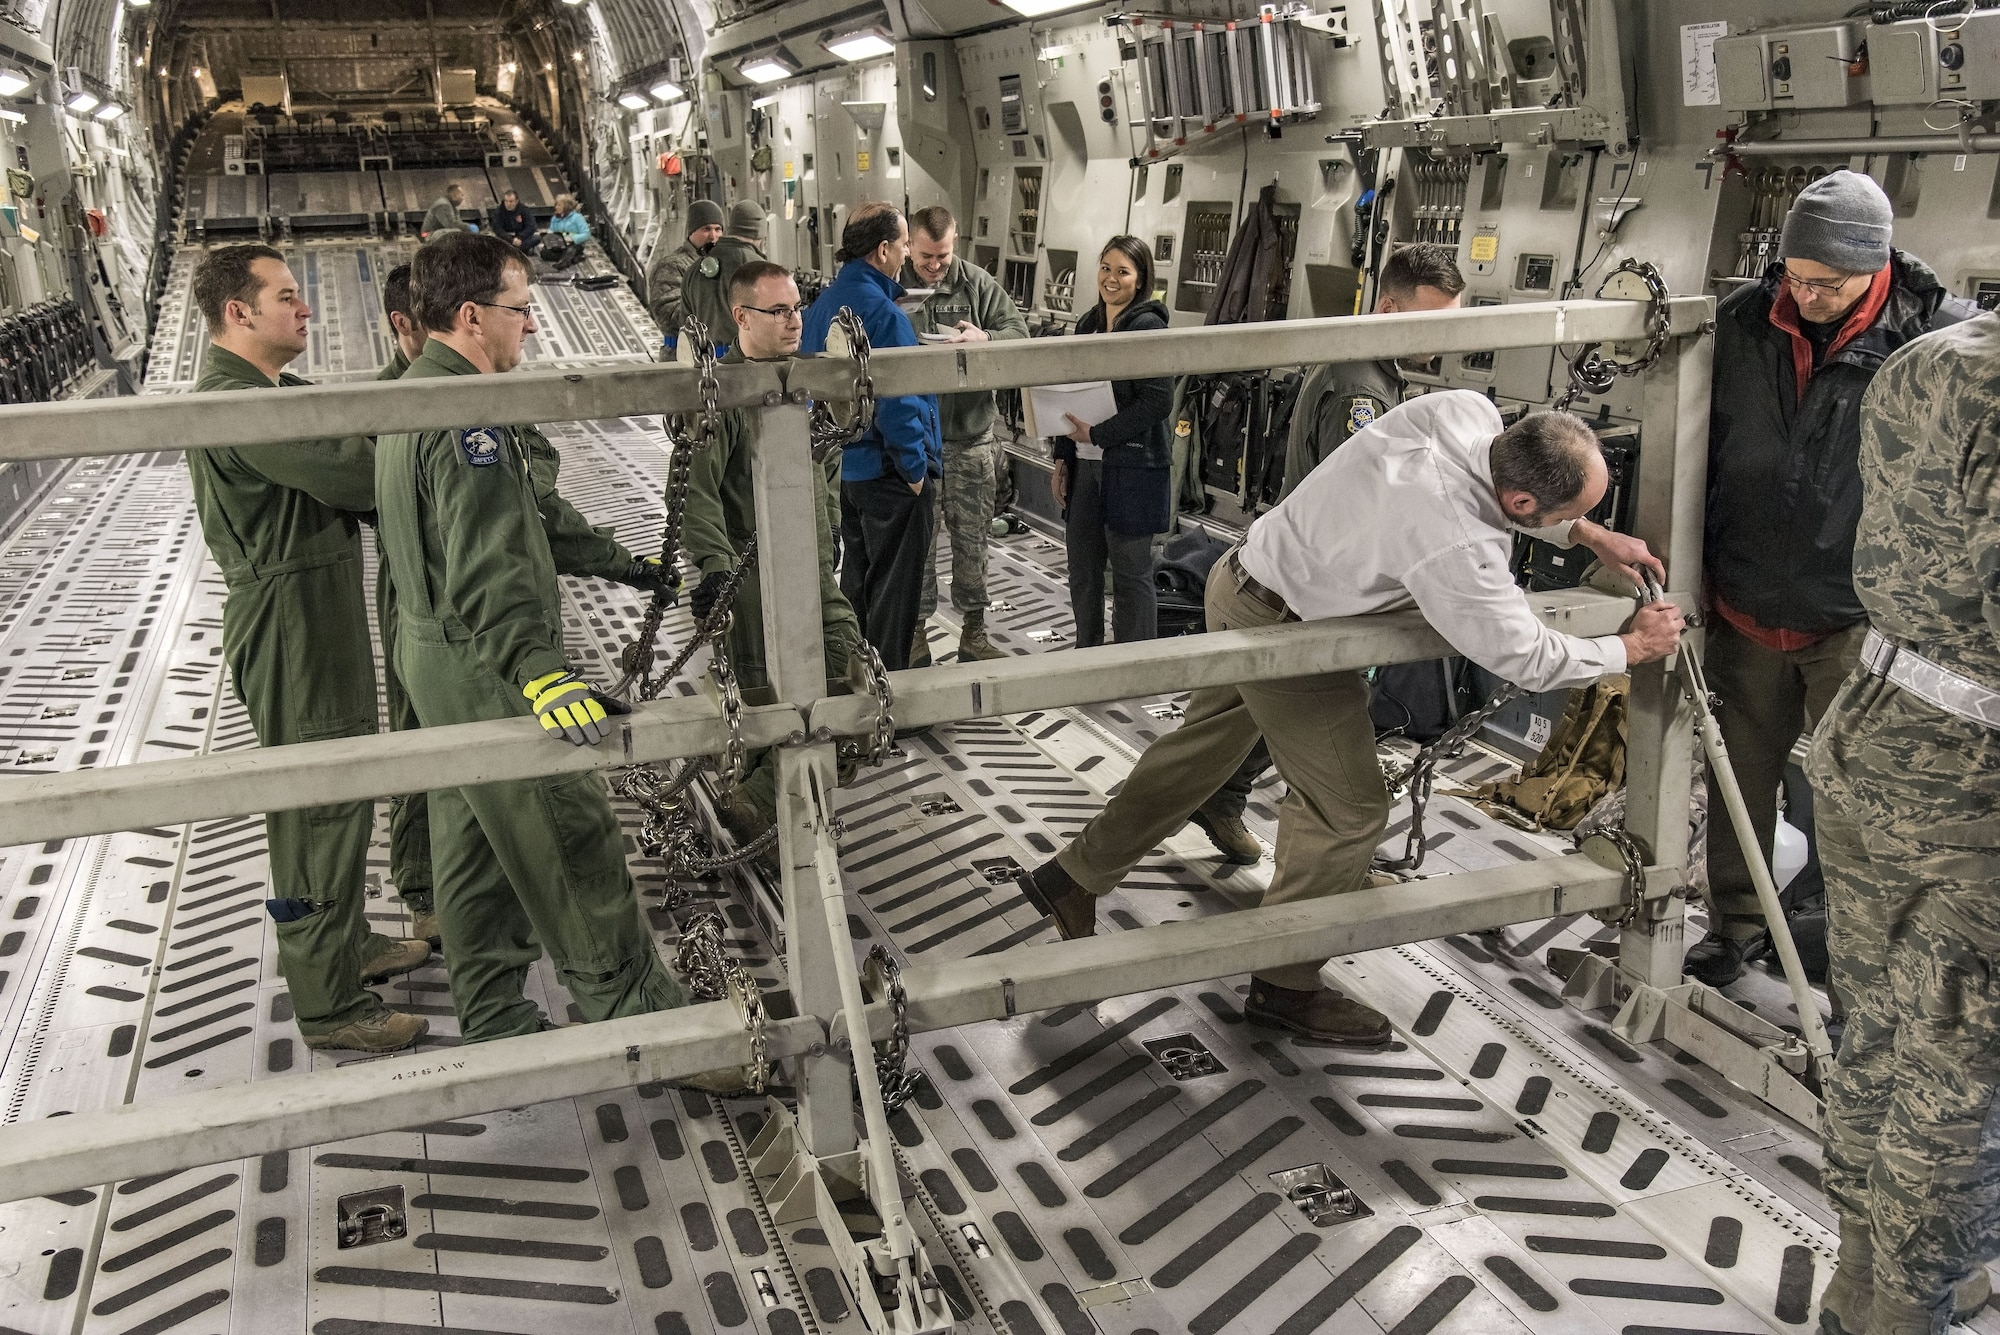 Justin Smoak, Samson Rope application engineering manager, Ferndale, Wash., places a synthetic chain into the slotted interface on the C-17 Globemaster III buffer stop assembly, Jan. 30, 2018 at Dover Air Force Base, Del. The buffer stop assembly is a device used during specific C-17 Globemaster III airdrop missions to keep pallets from shifting forward in the cargo compartment. (U.S. Air Force photo by Roland Balik)